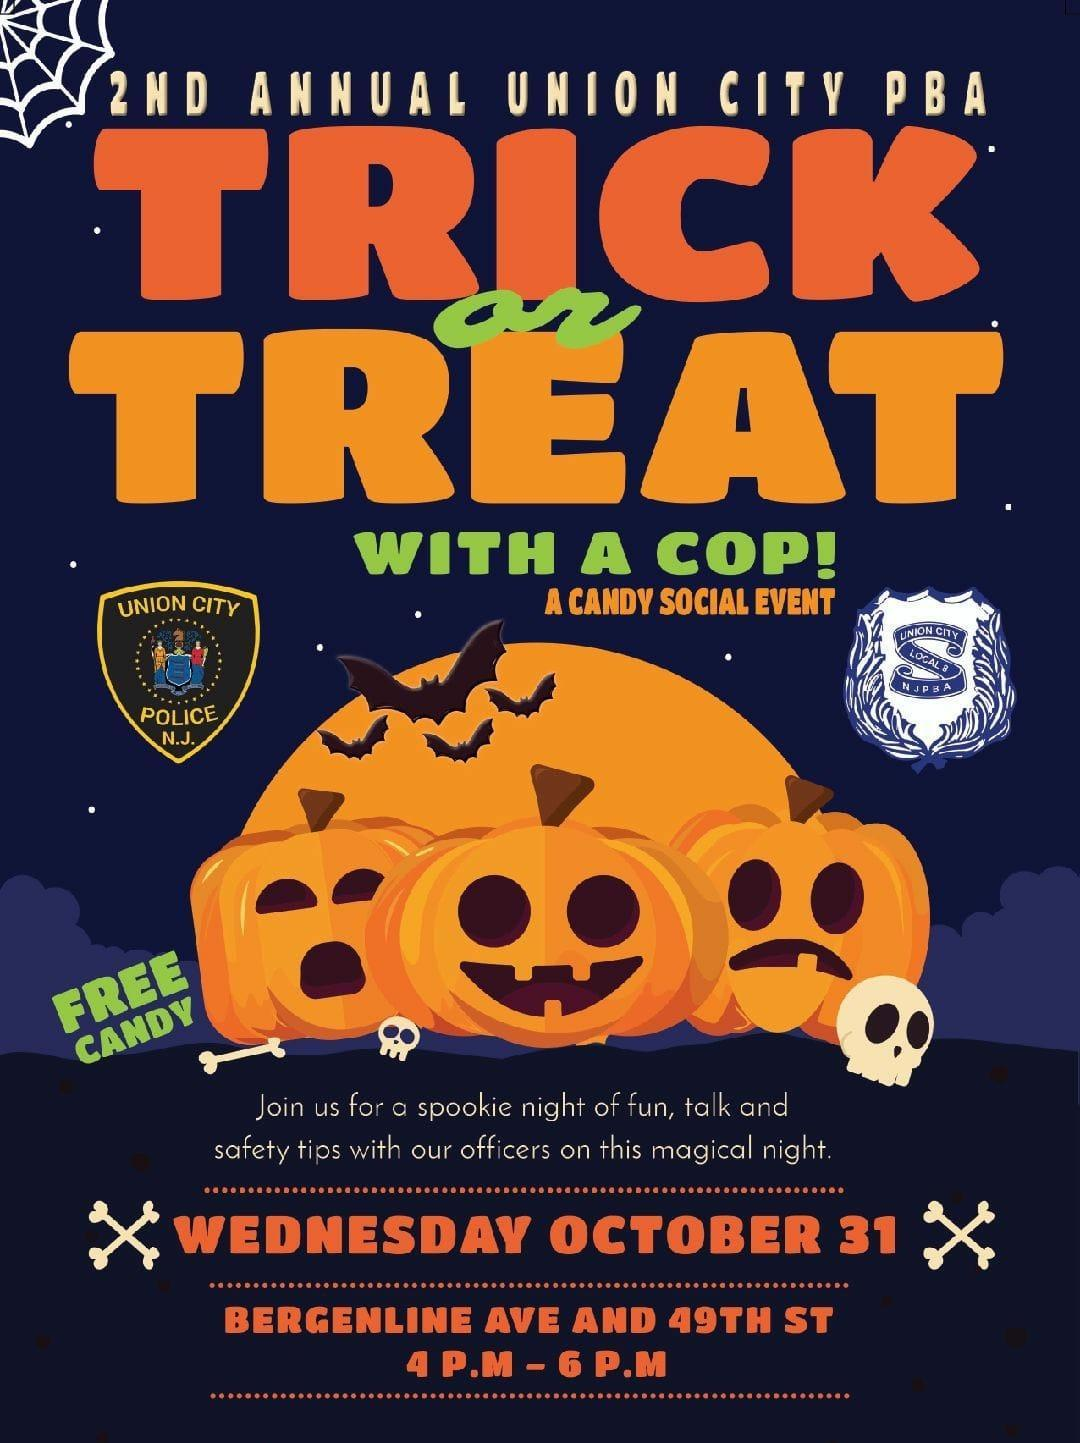 Trick or Treat with A Cop! A Candy Social Event